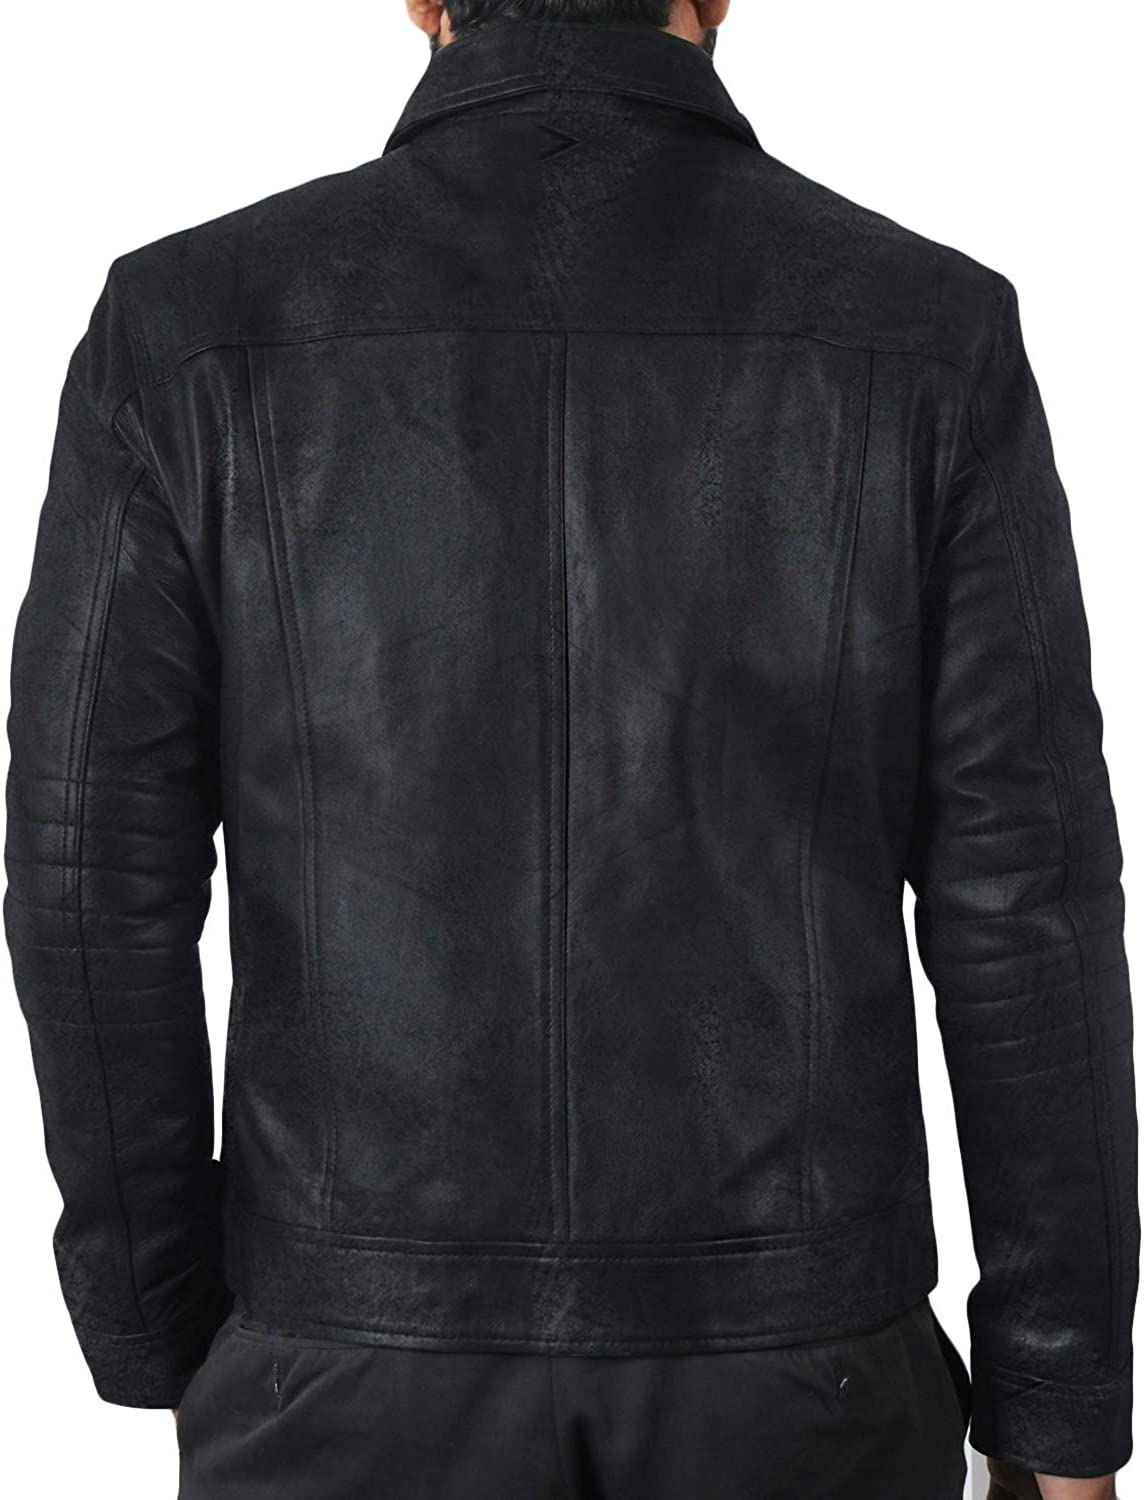 Laverapelle Mens Genuine Lambskin Leather Jacket 1501483 Black, Regal Jacket